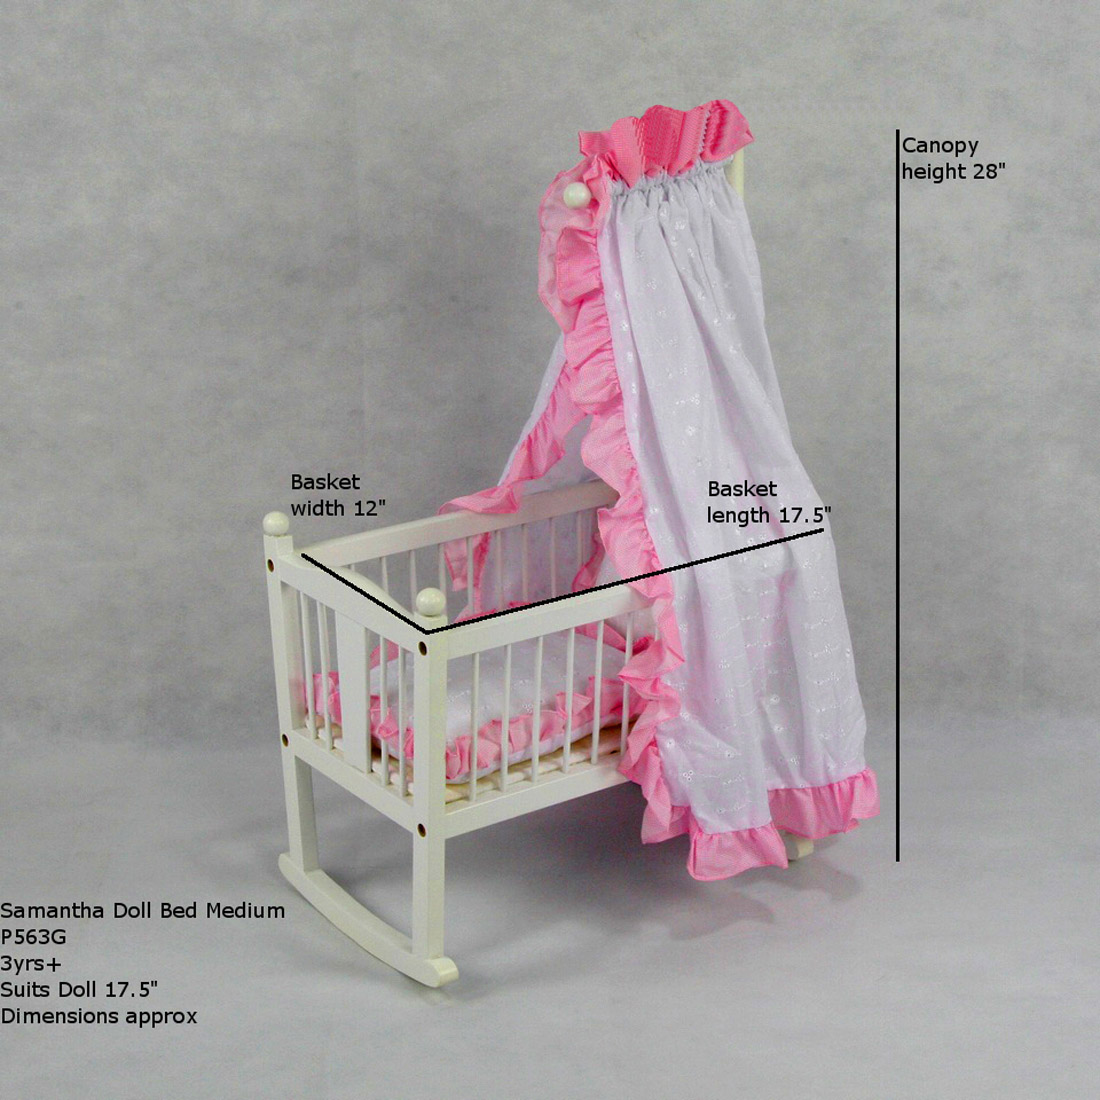 doll accessories    doll carriages  strollers  carriers    samantha doll bed